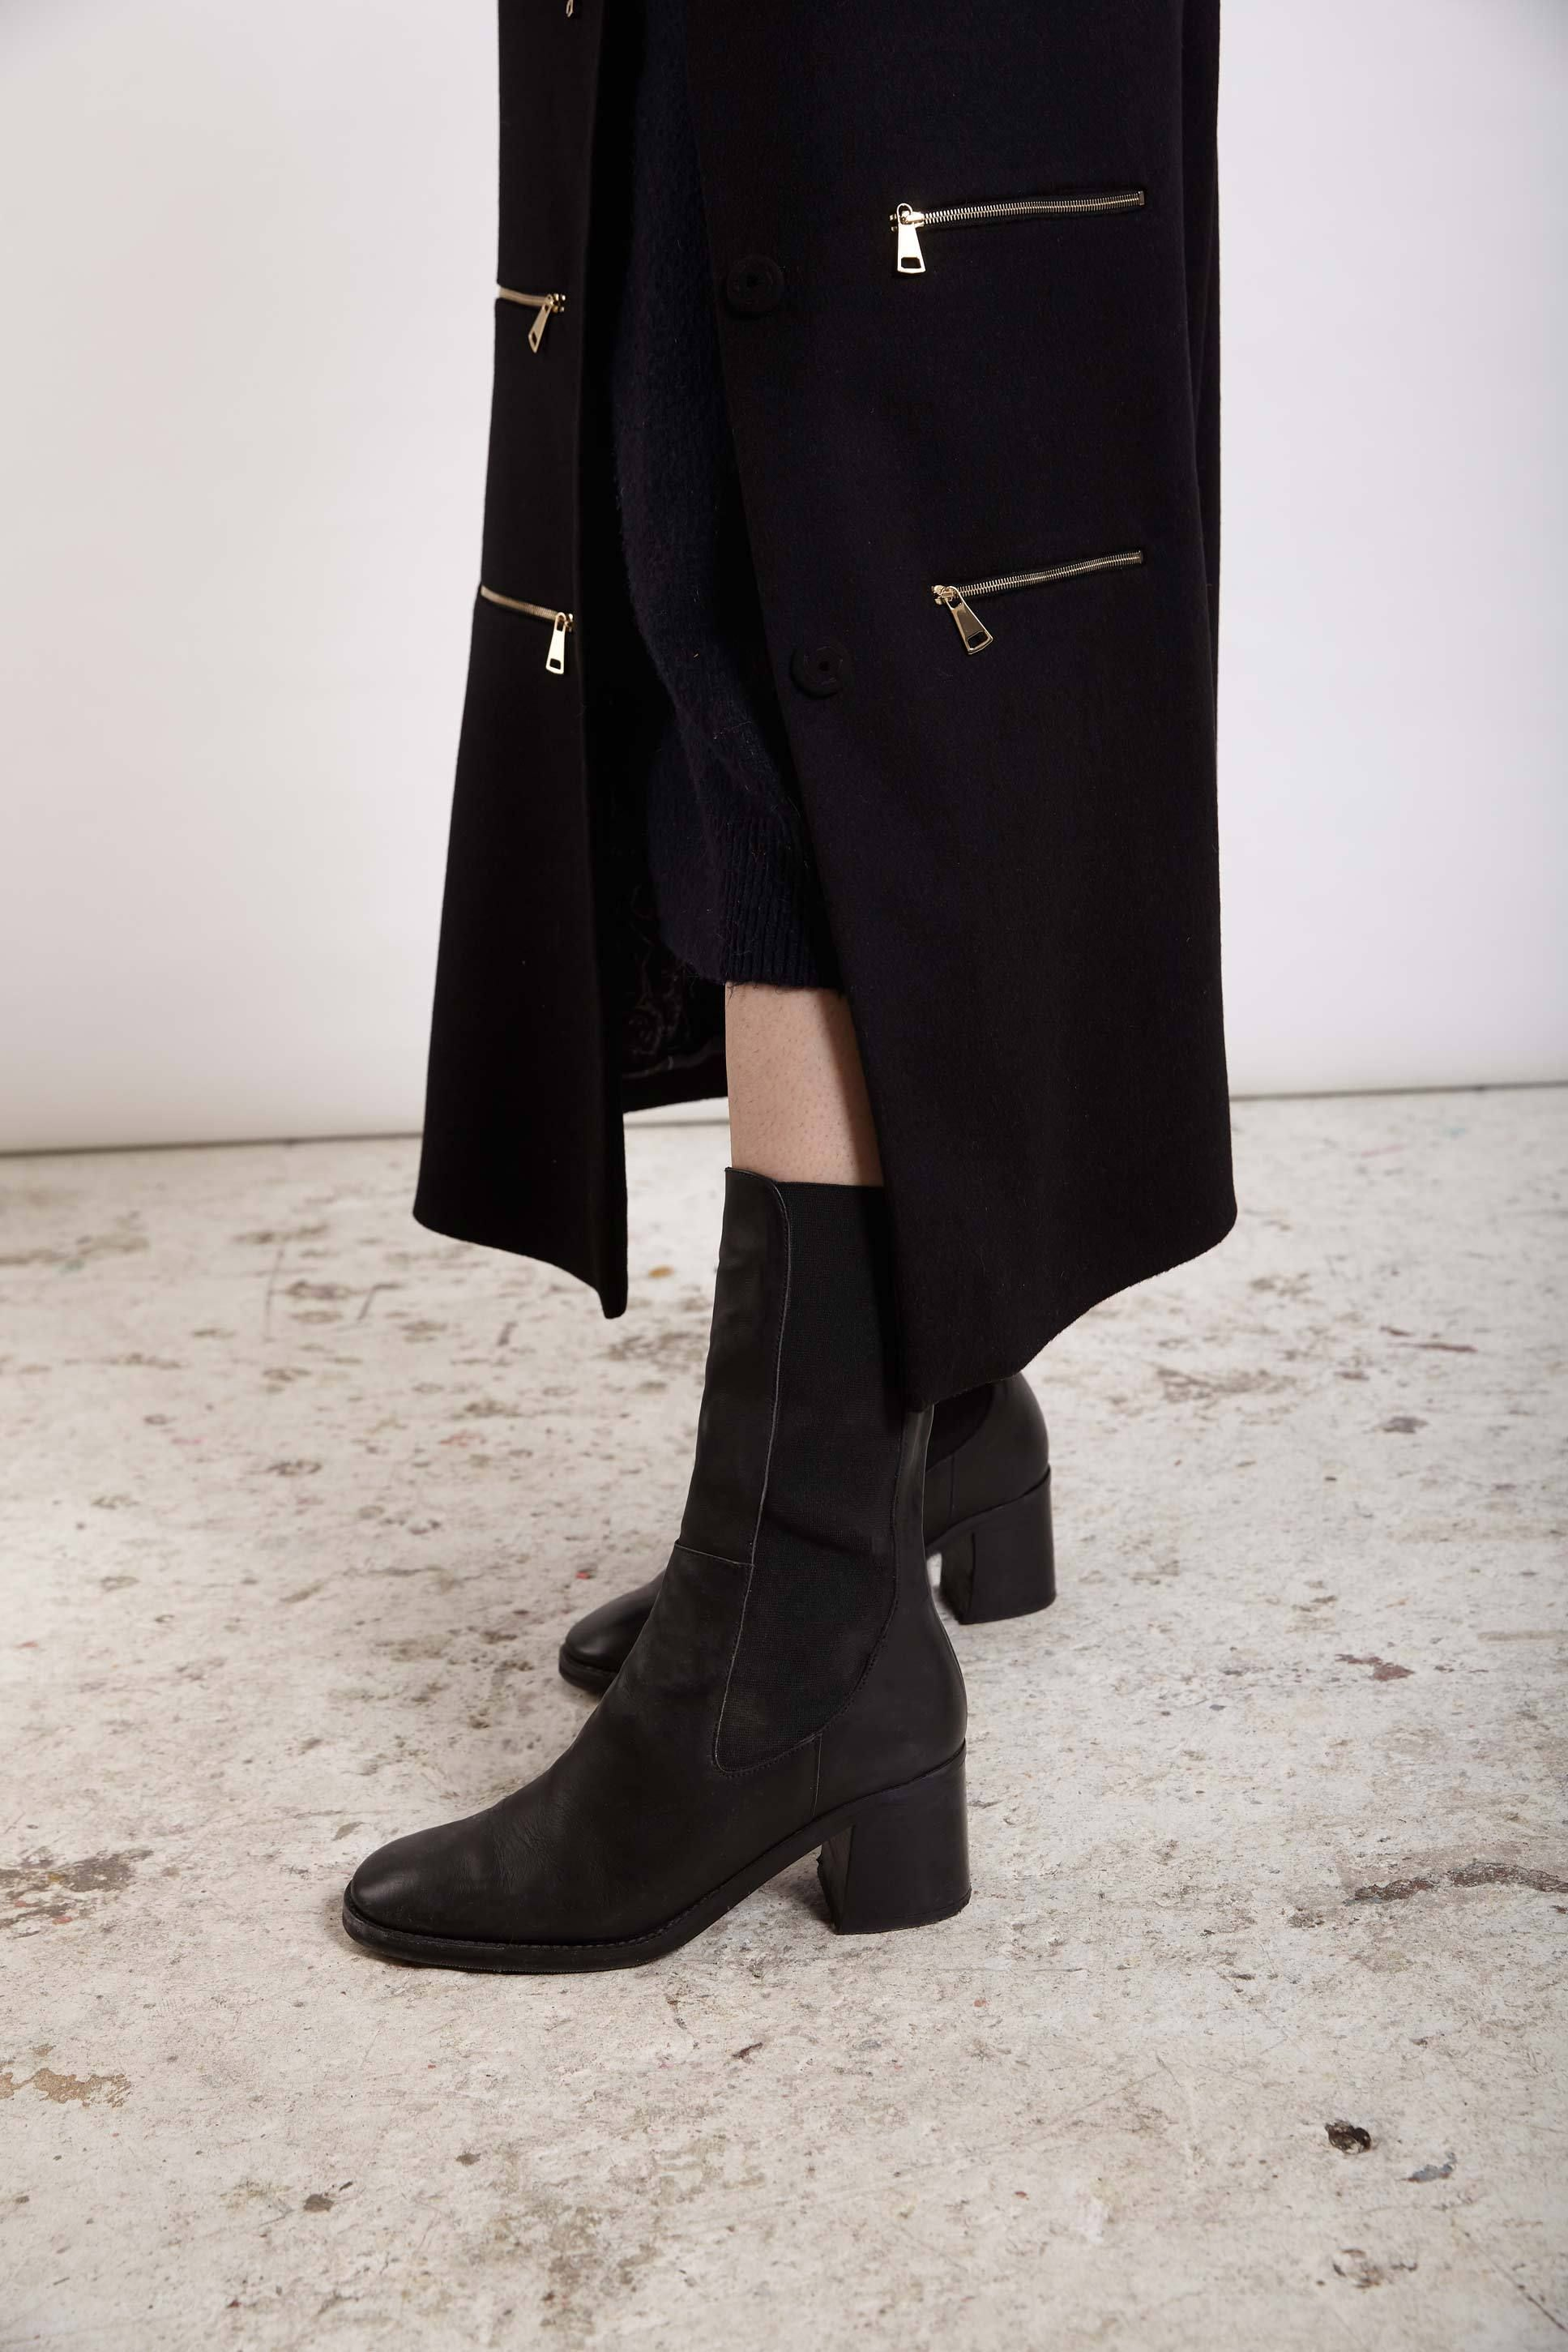 MACY BLACK LEATHER BOOTS by Miista